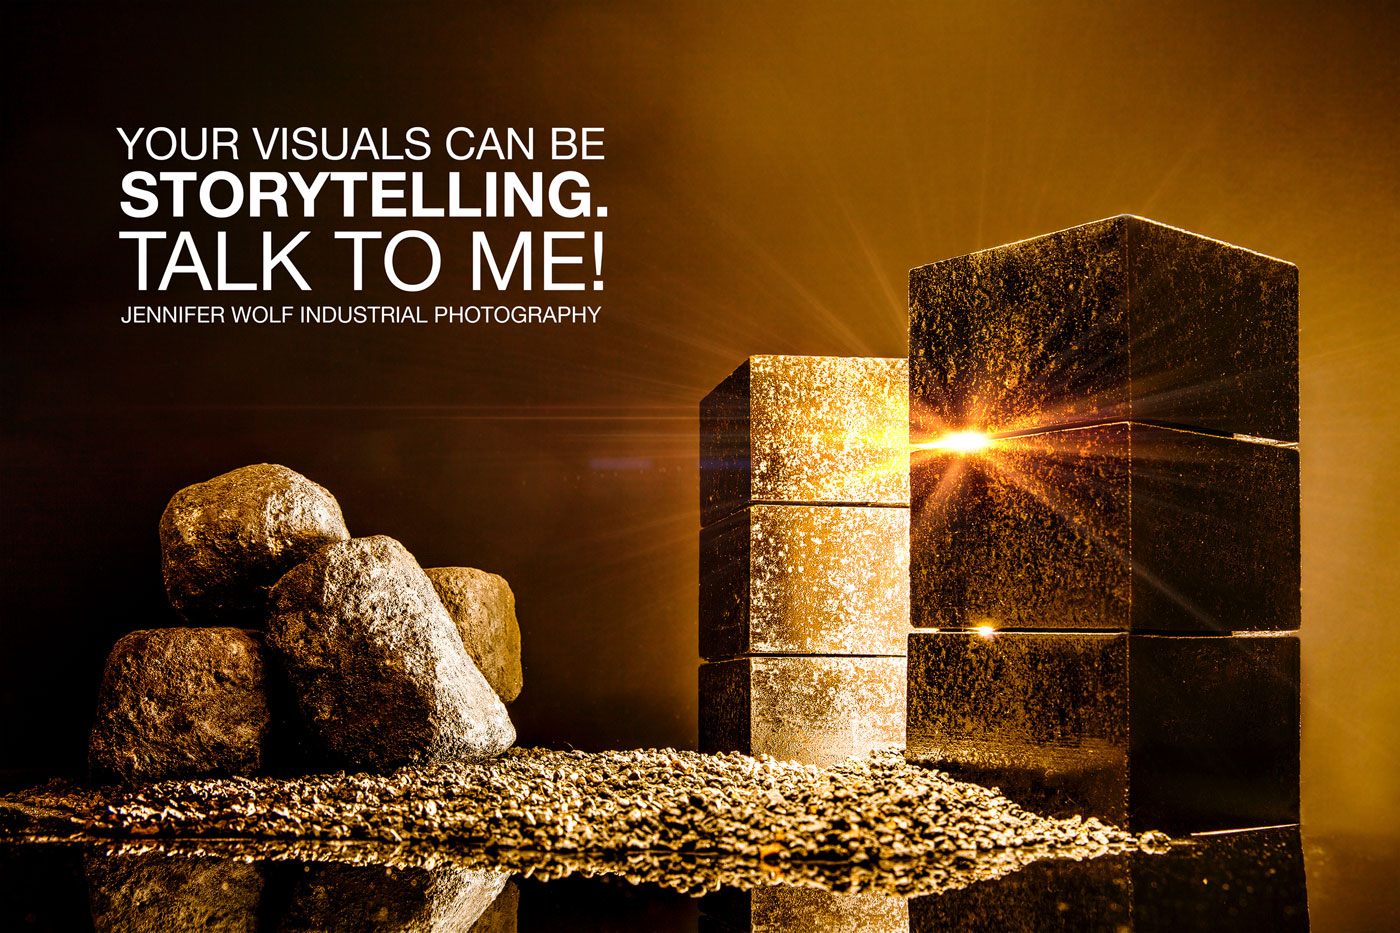 Your visuals can be storytelling.